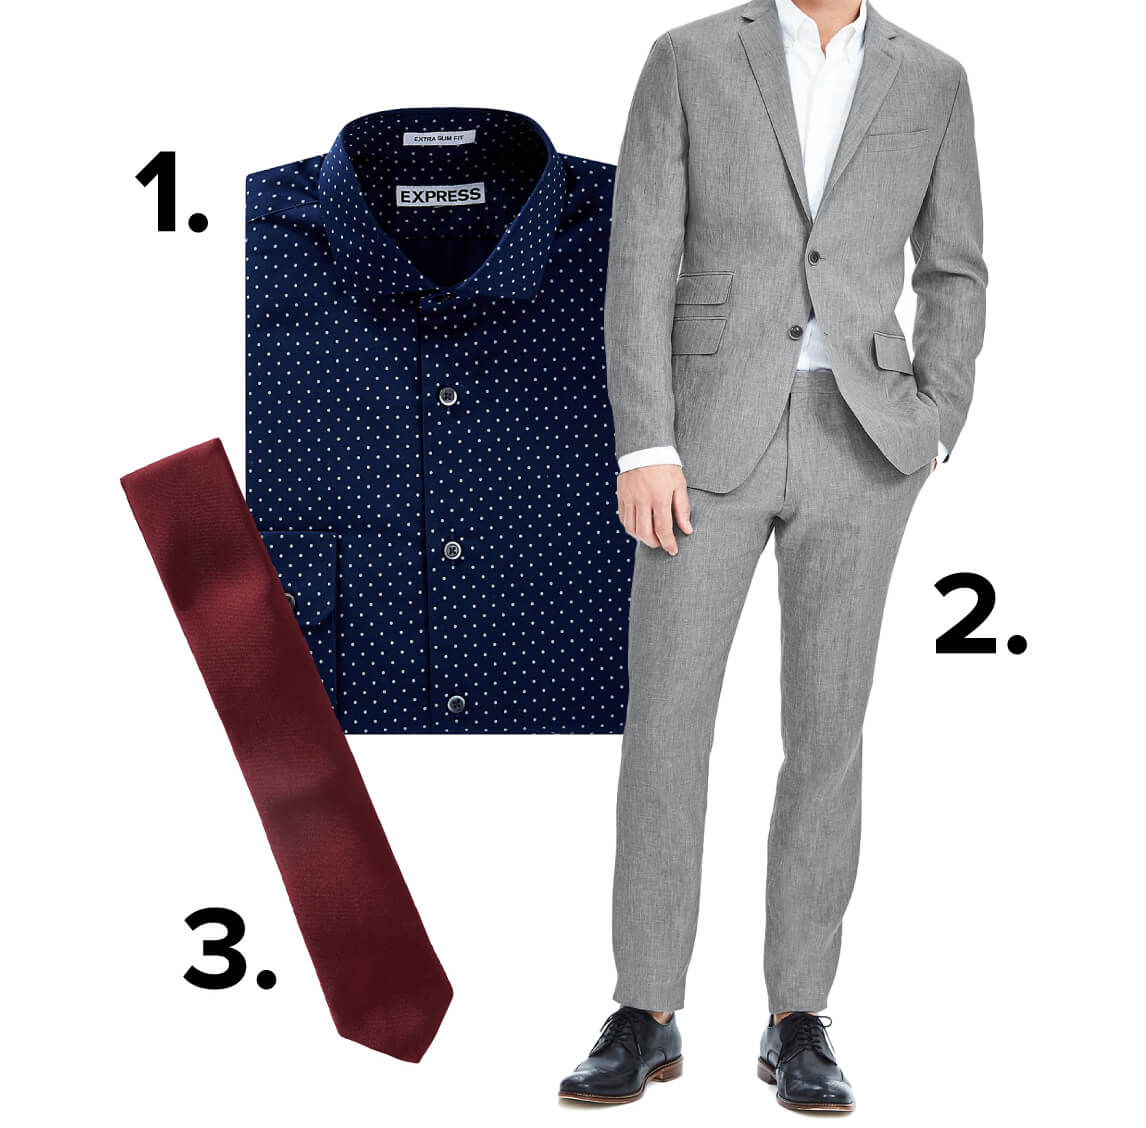 c755049af04 Be cautious of adding too many layers thought — you don t want to create an  oven for yourself! You can also add touches like cufflinks to your suit to  show ...